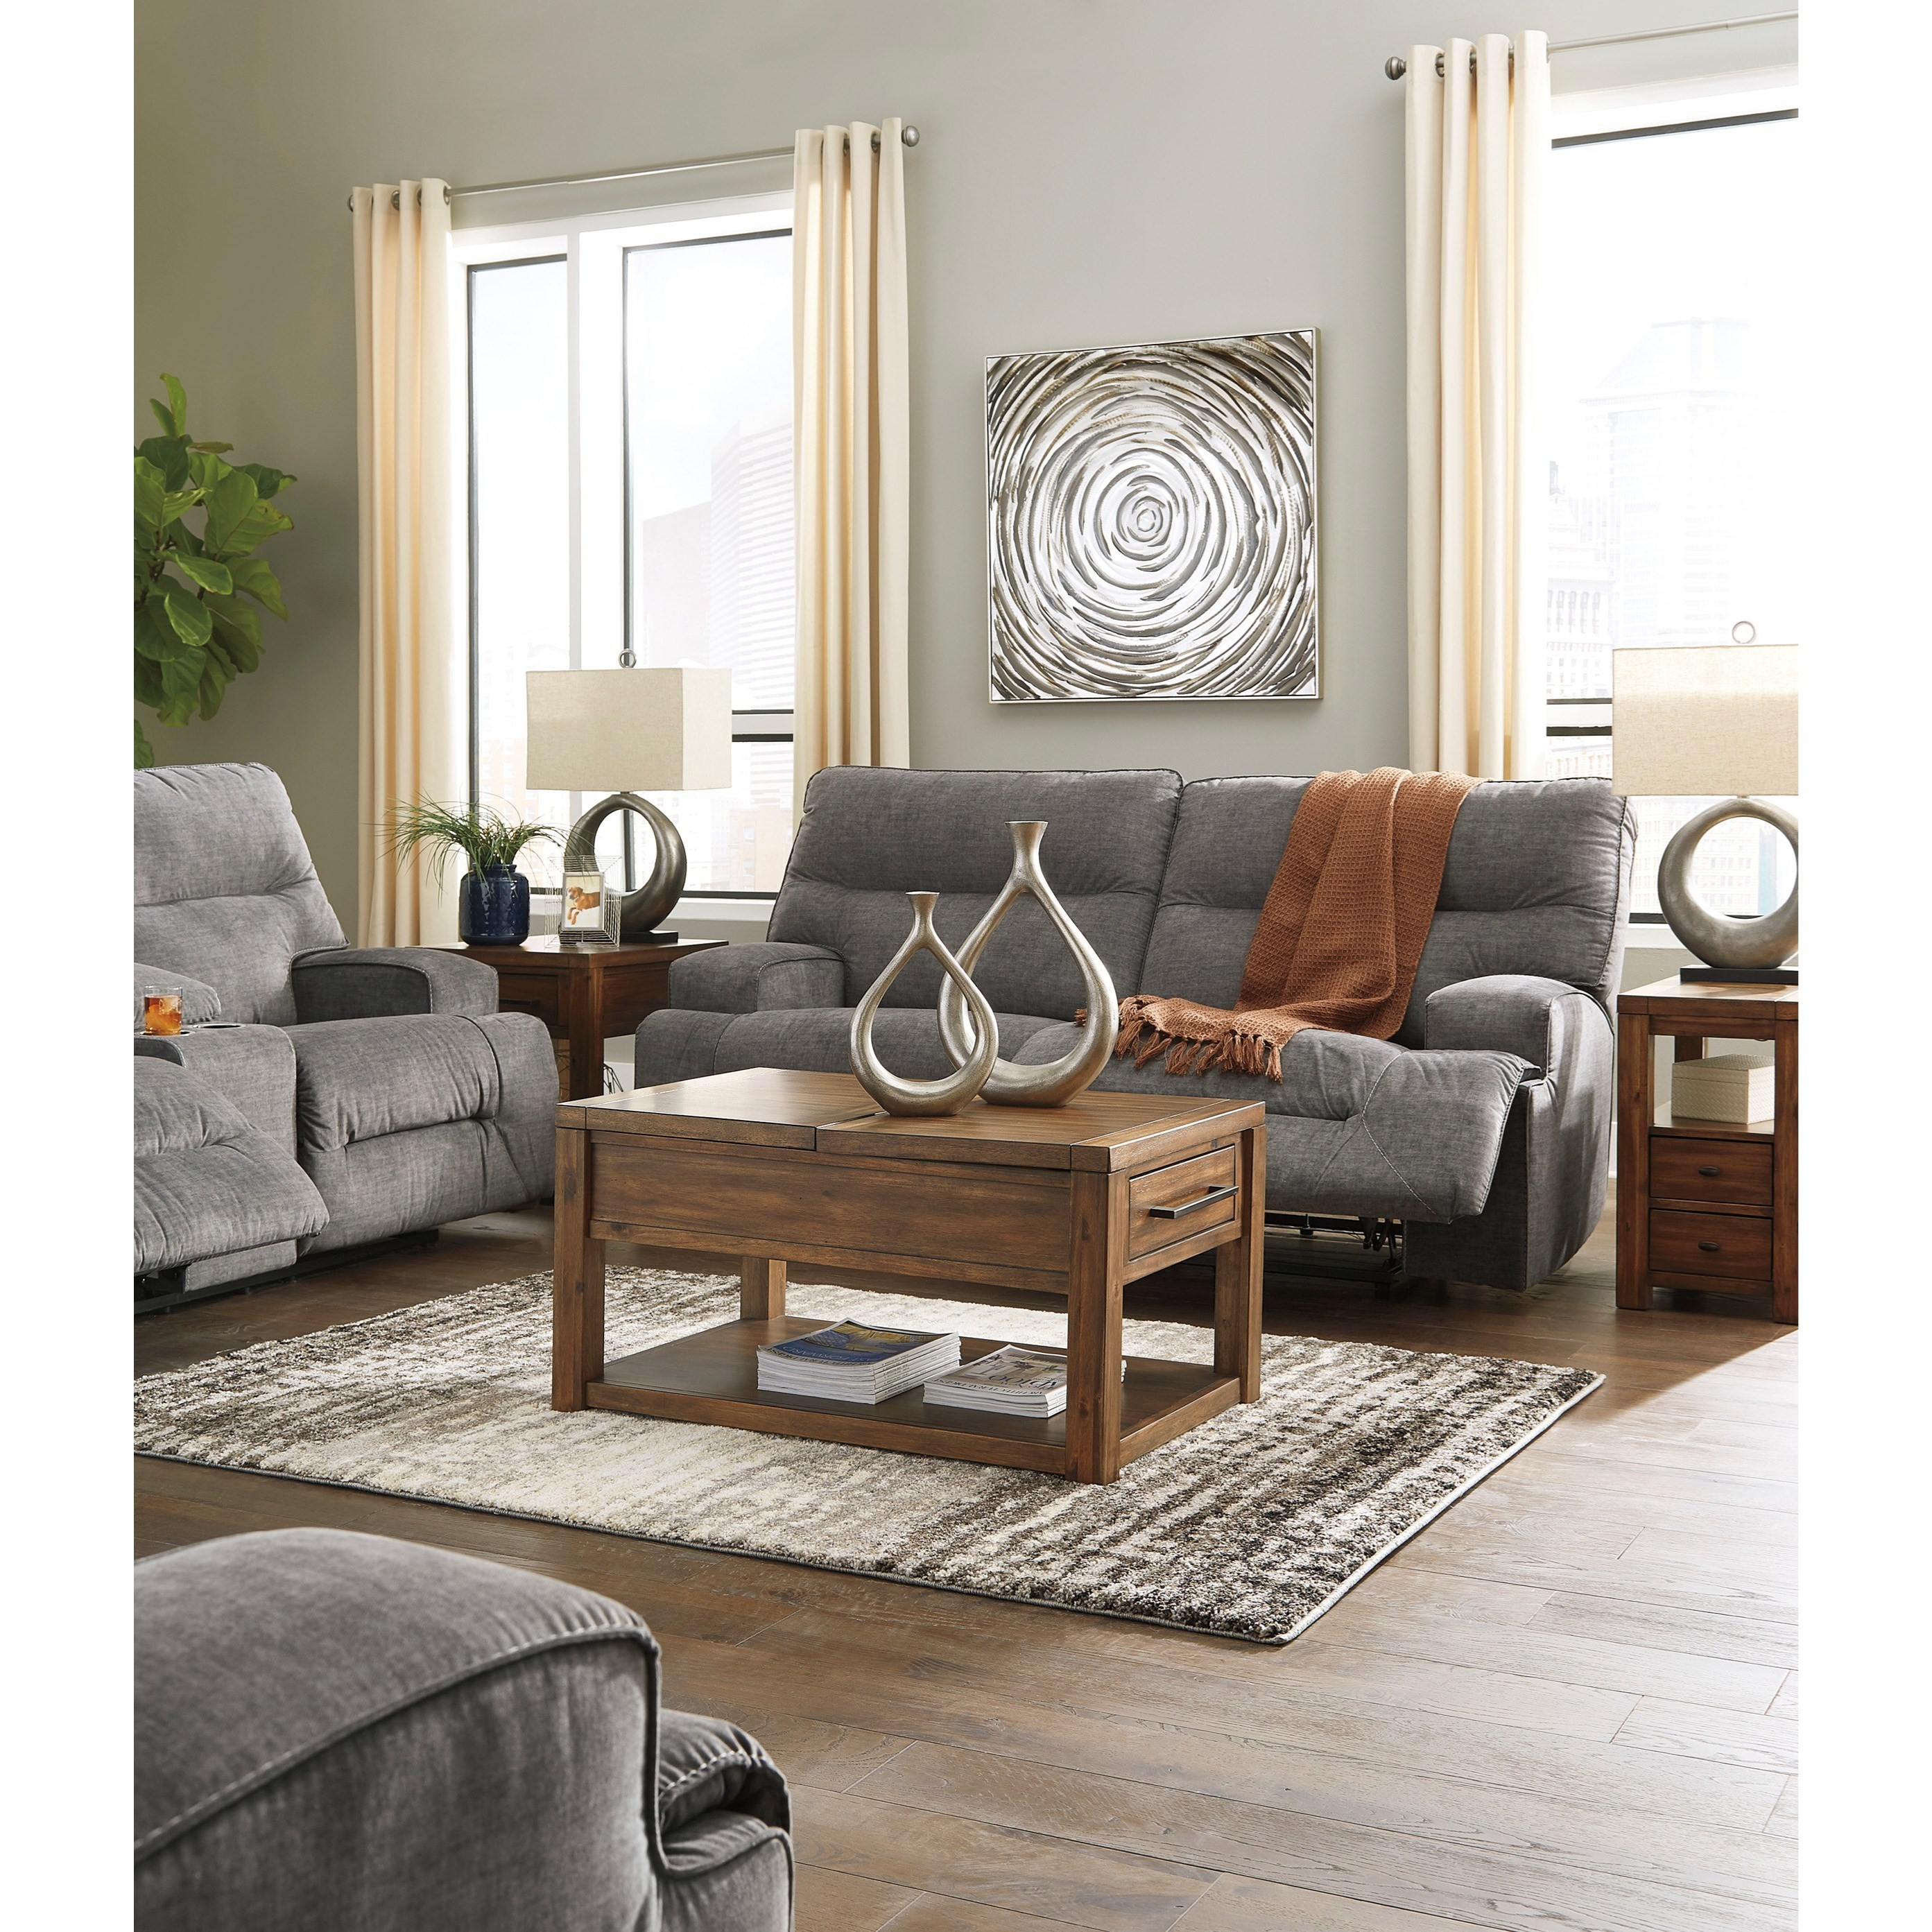 Coombs Reclining Living Room Group by Benchcraft at Northeast Factory Direct